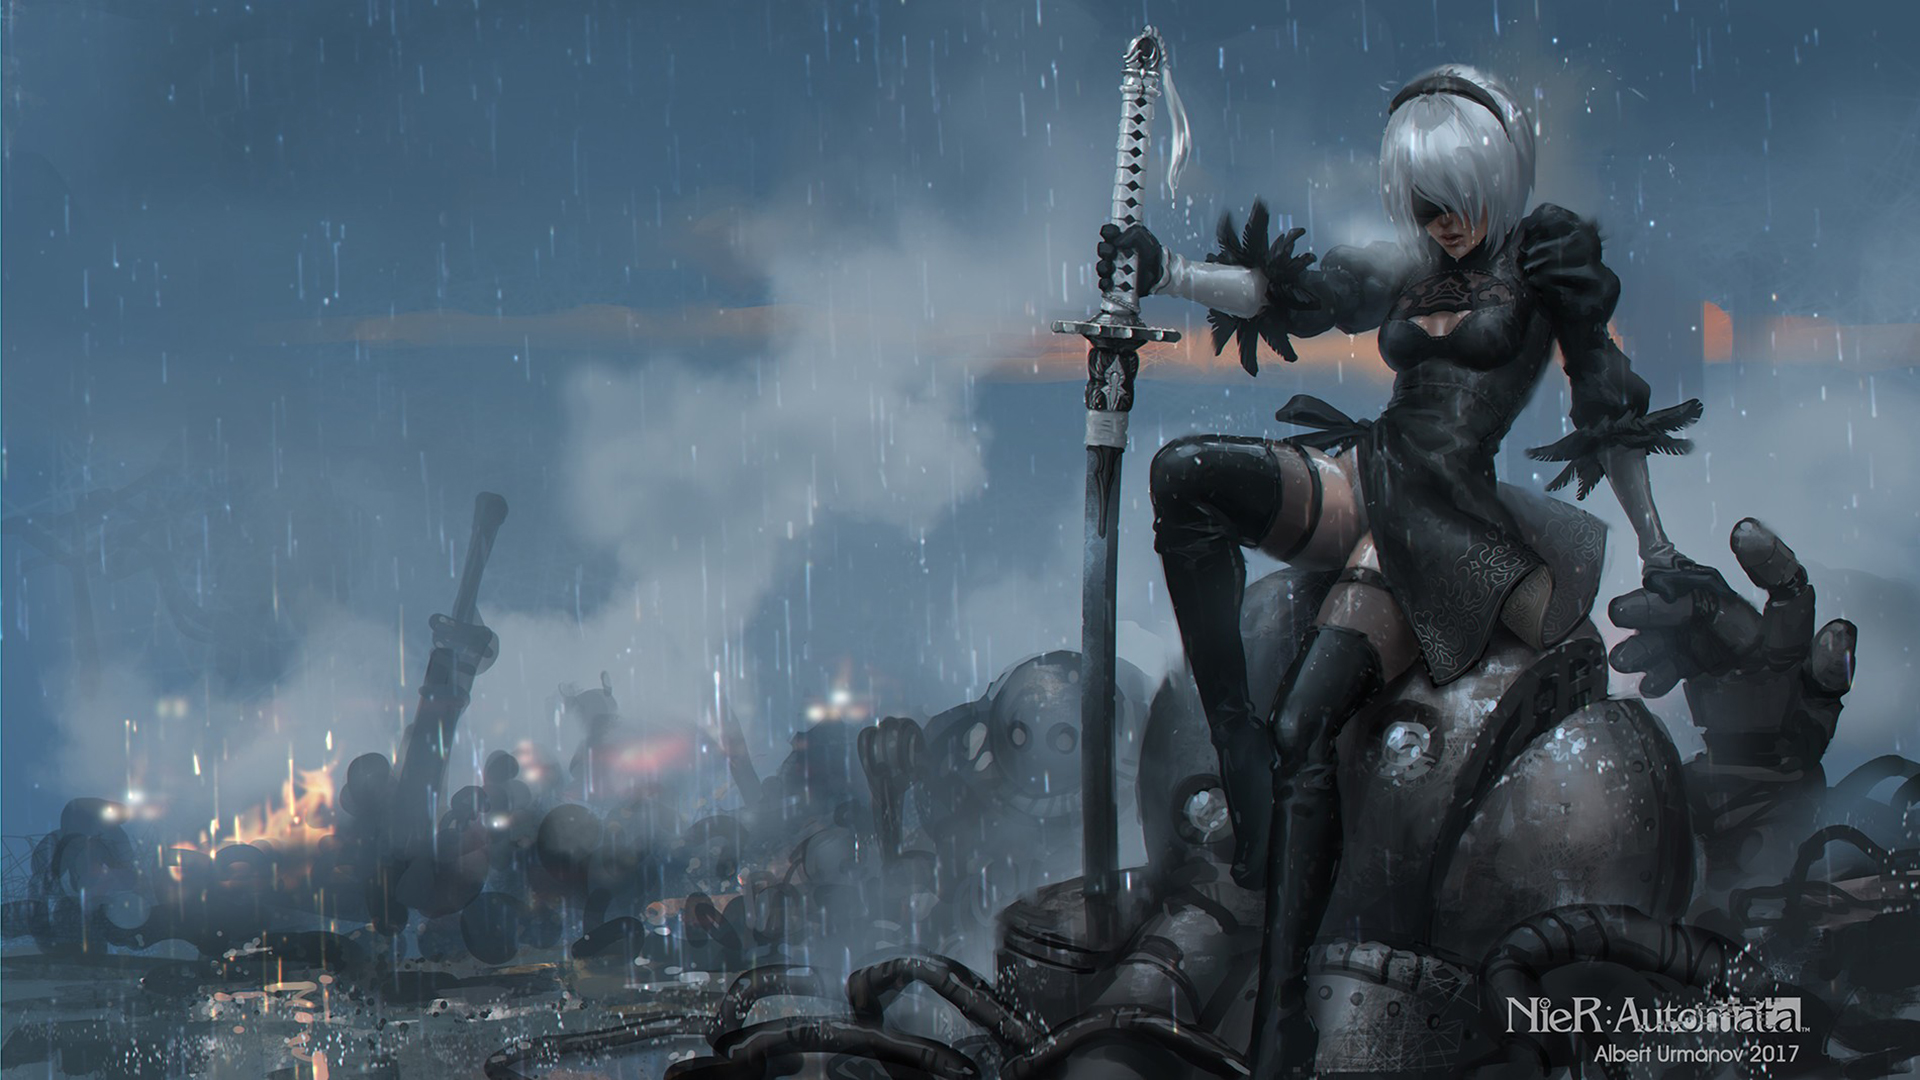 Free Download Nier Automata Game 279 Wallpapers 3 1920x1080 For